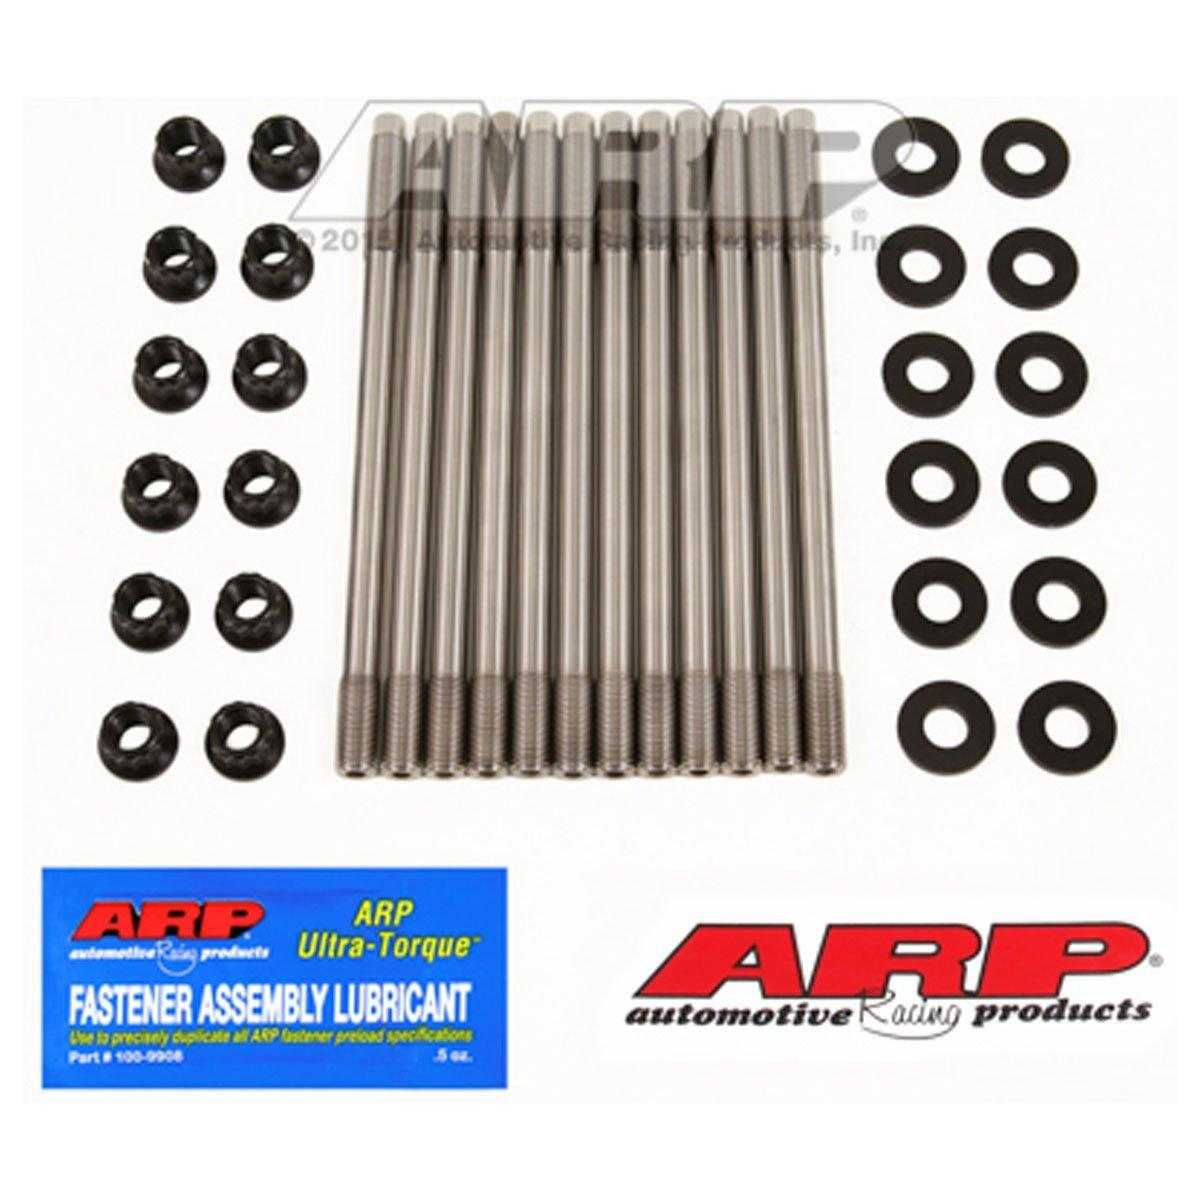 ARP 2000 11mm Head Studs for EJ DOHC Engines